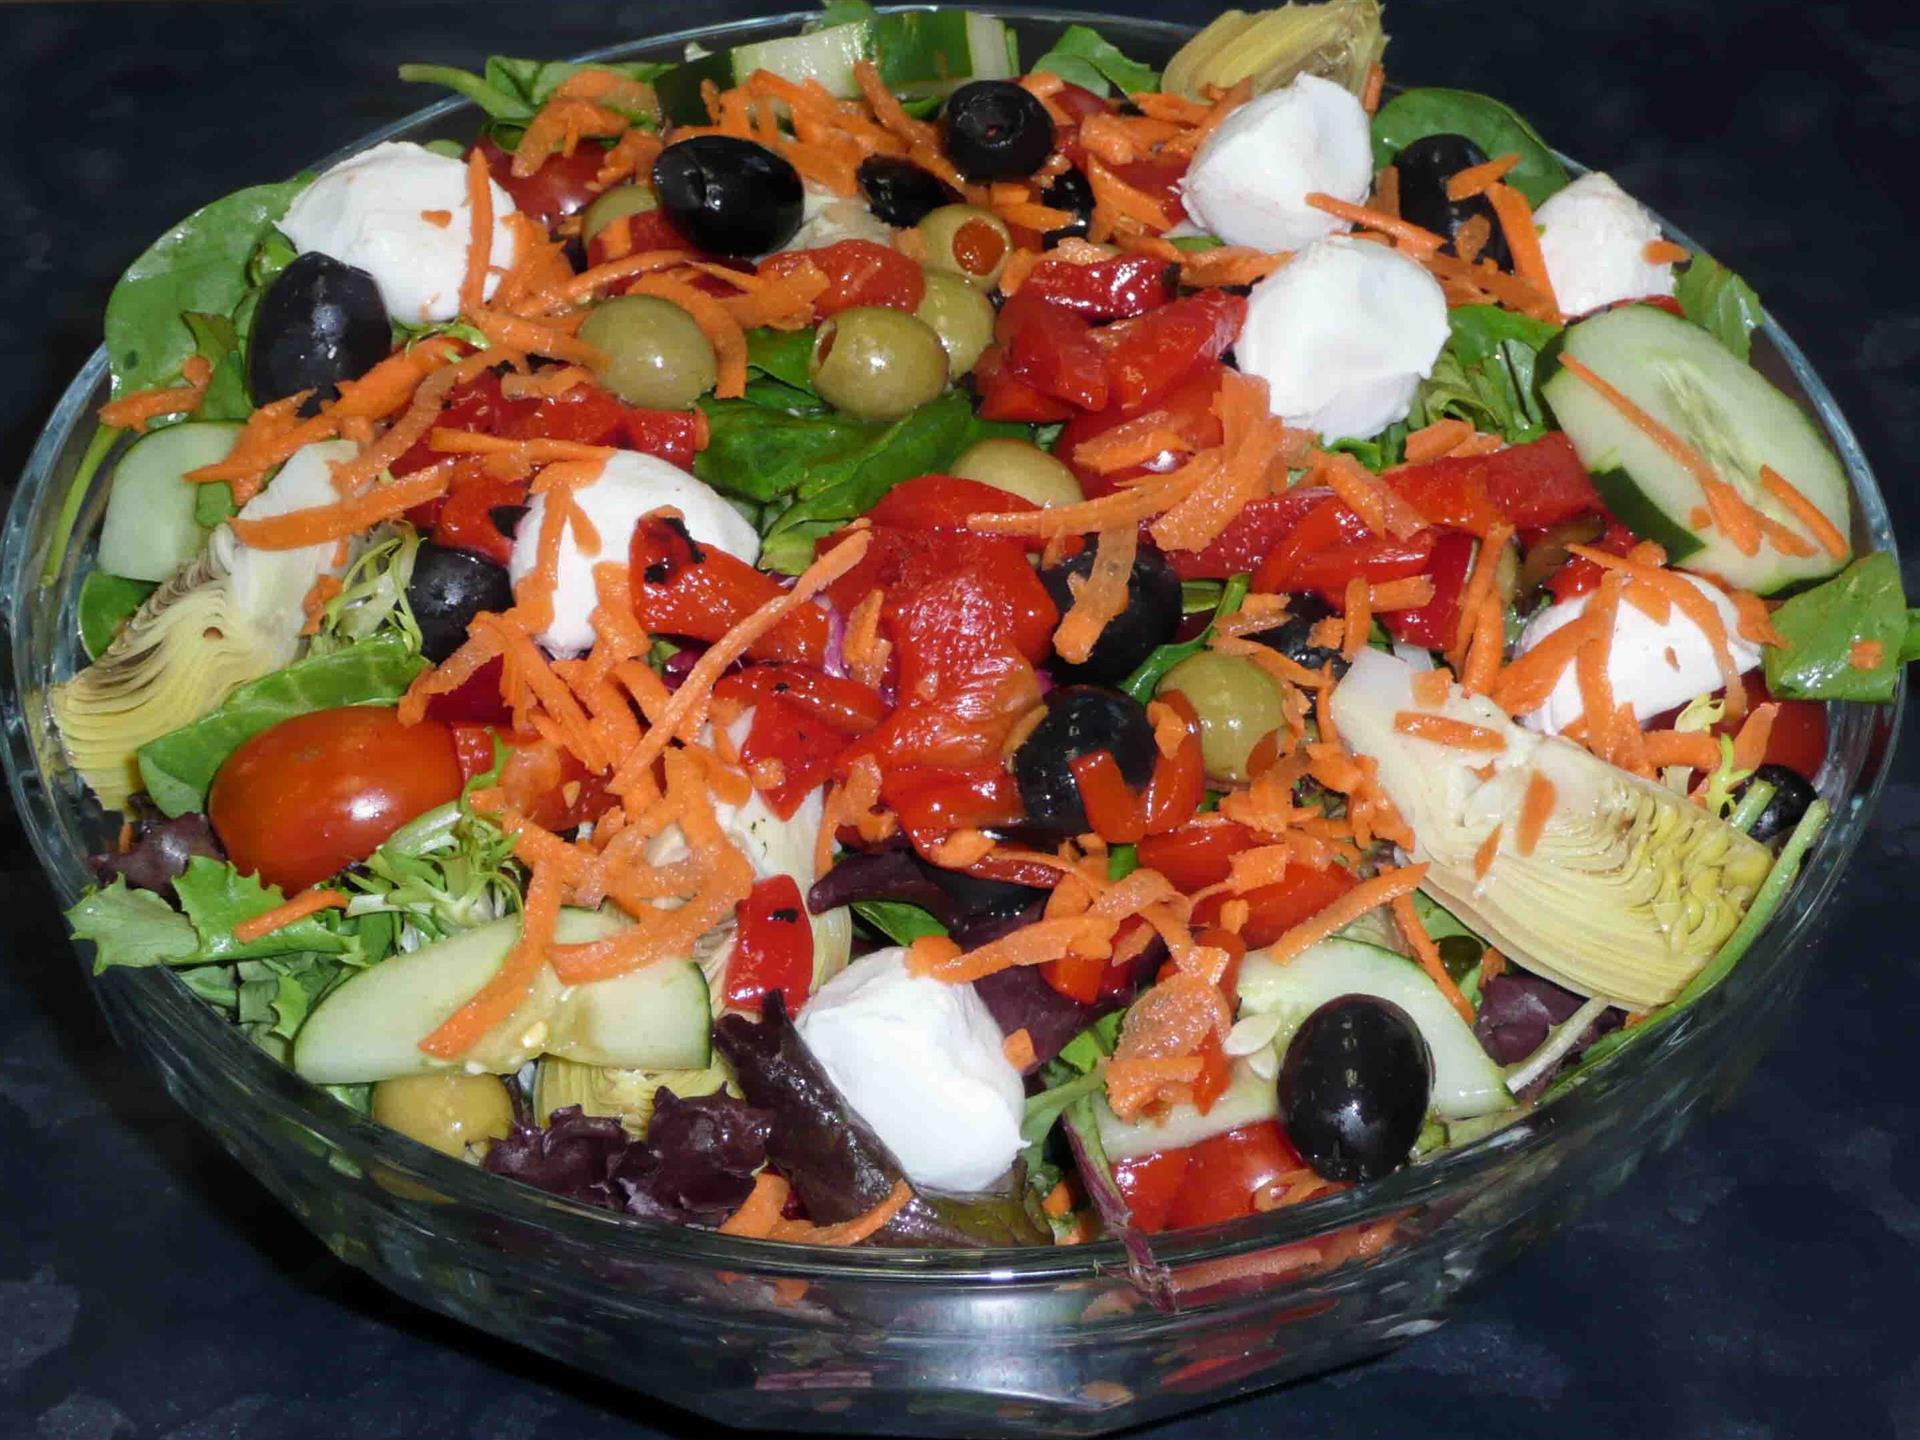 large salad with carrots, black and green olives, cucumbers and tomatoes